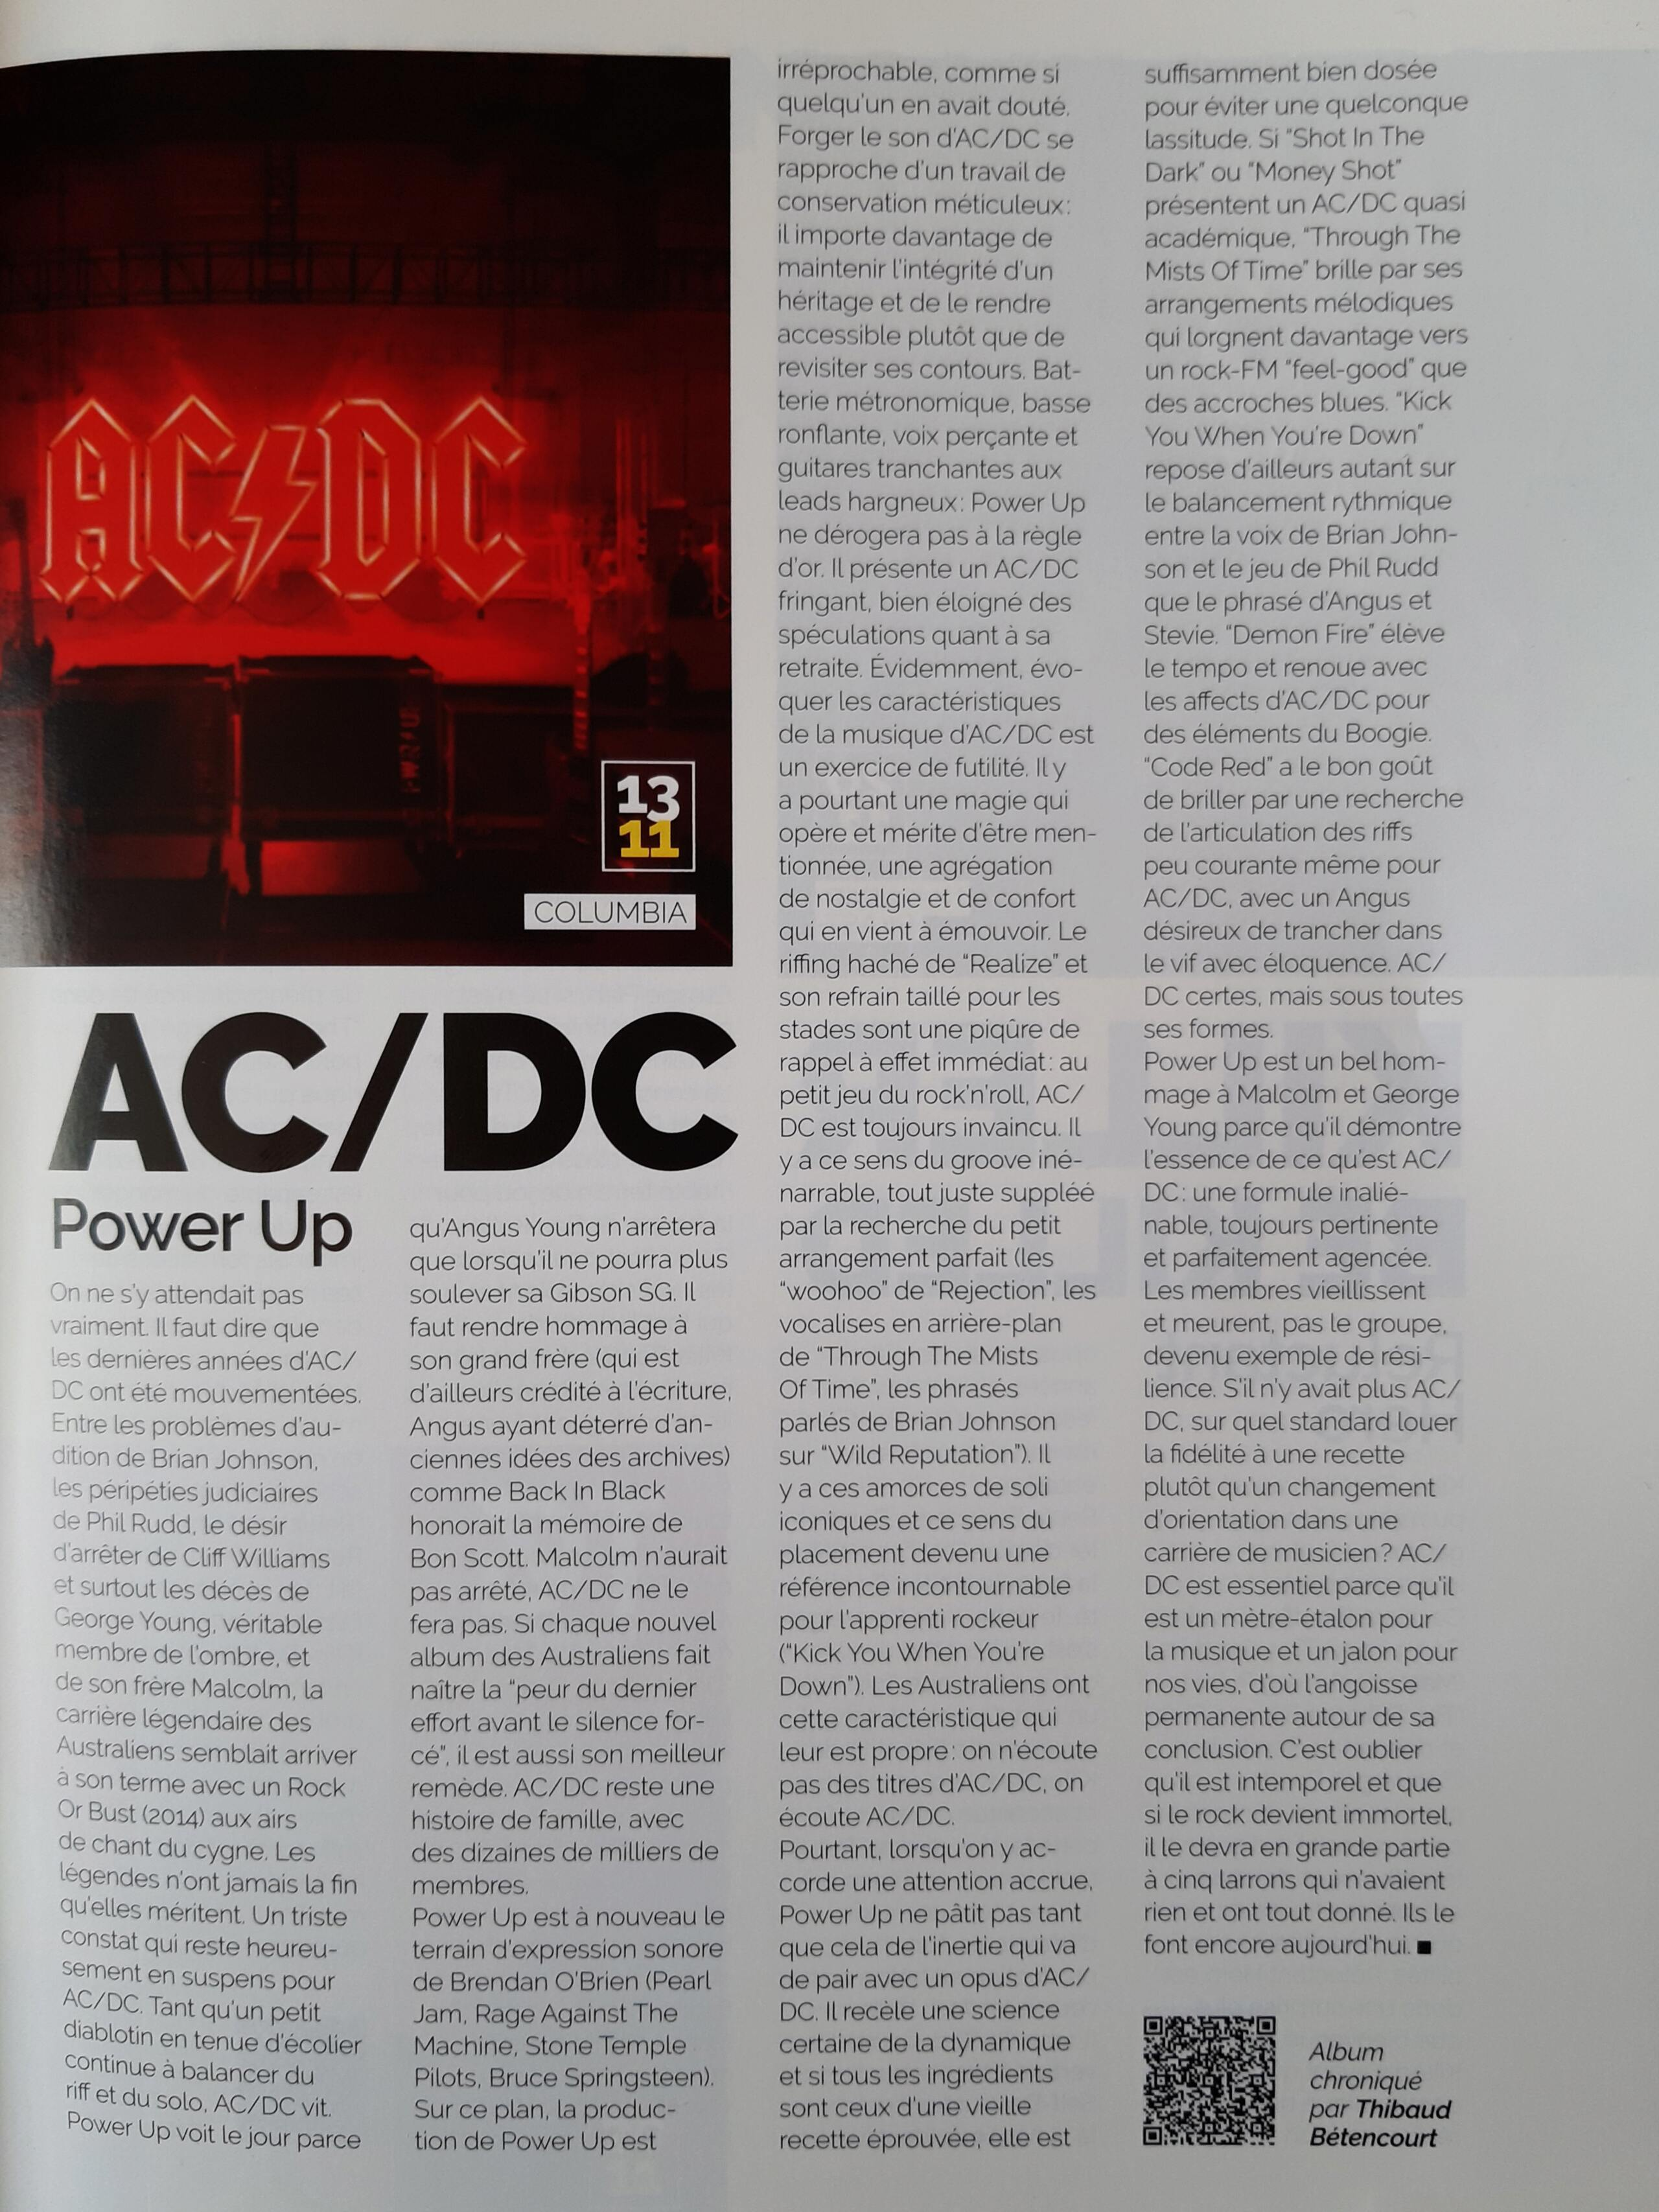 ACDC Power Up (2020) Hard-Rock Australie - Page 4 20201224